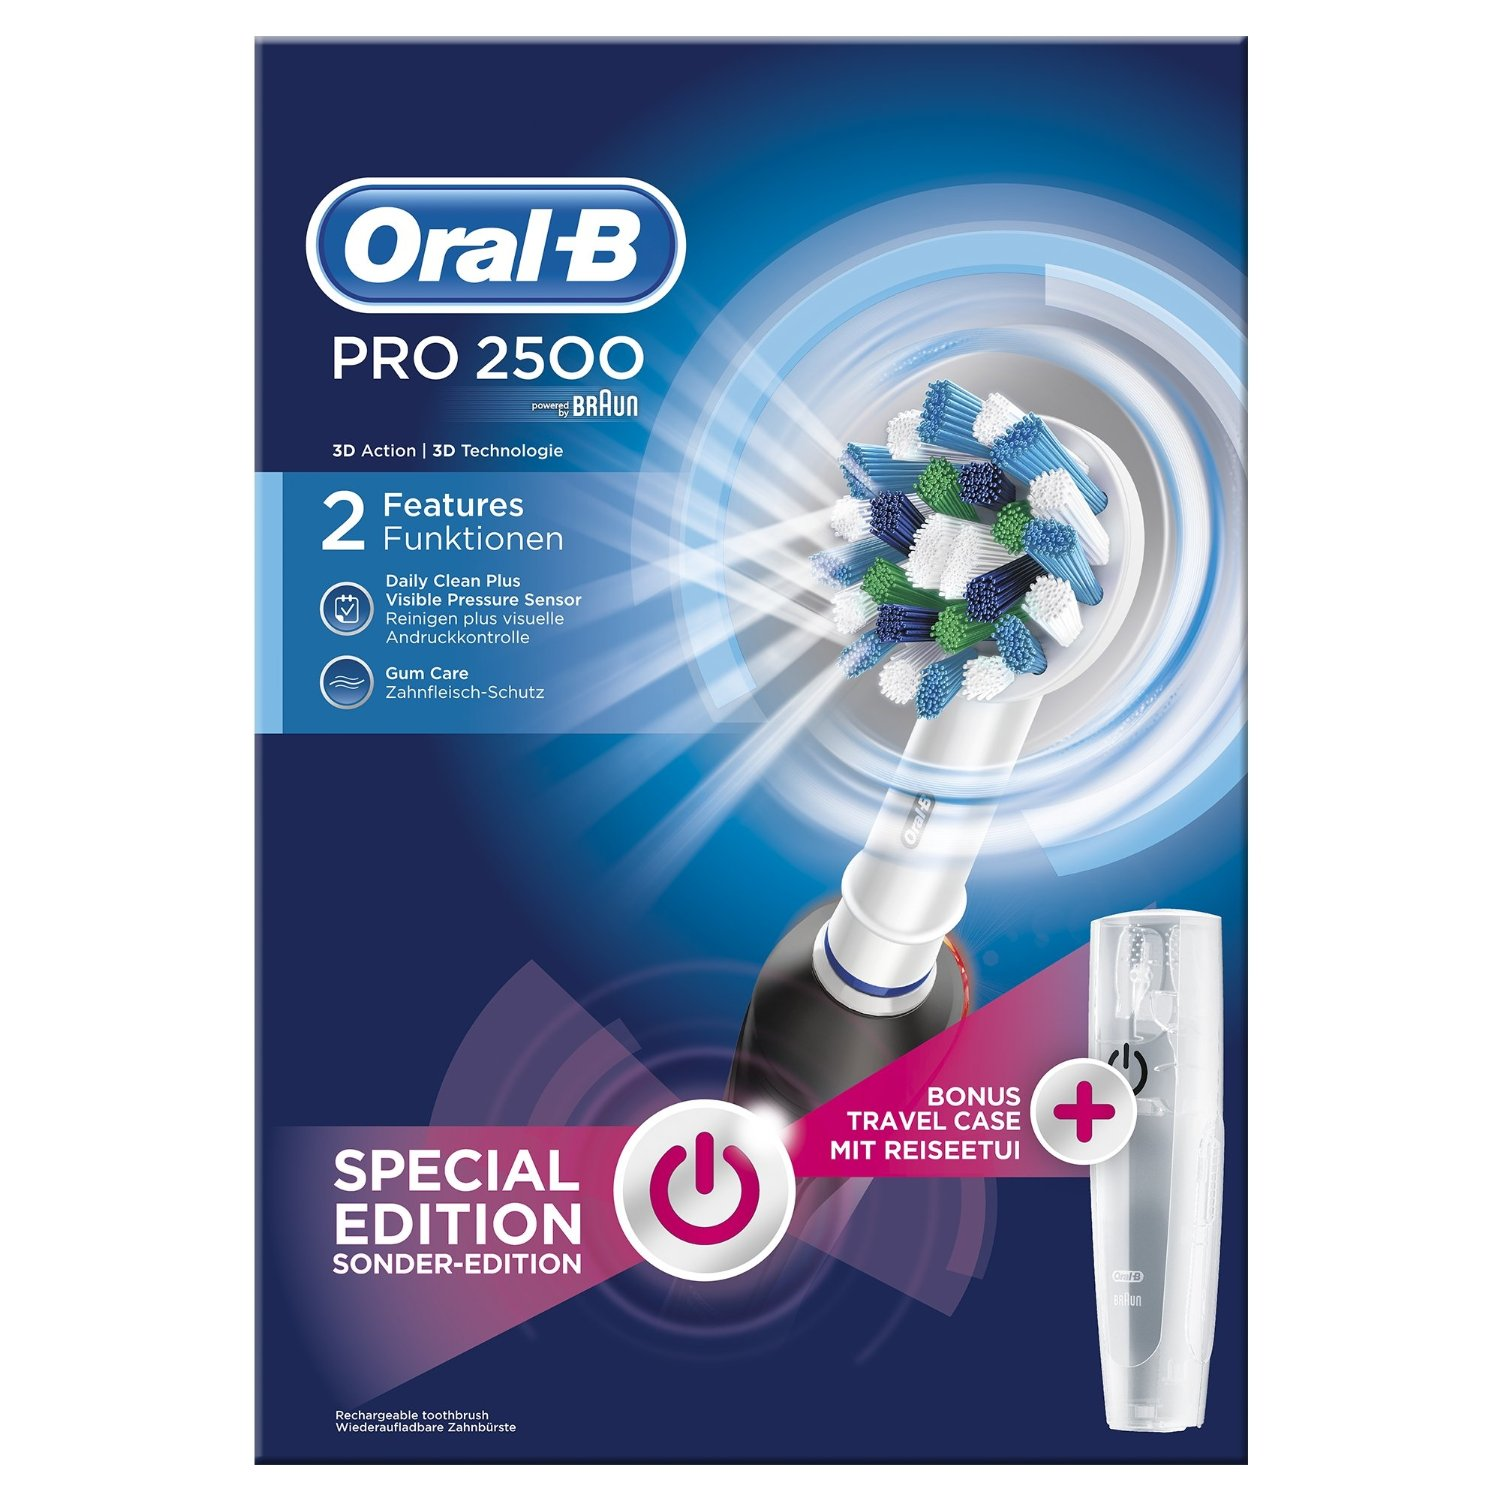 Oral B Pro 2500 Crossaction Cepillos De Dientes Eléctricos